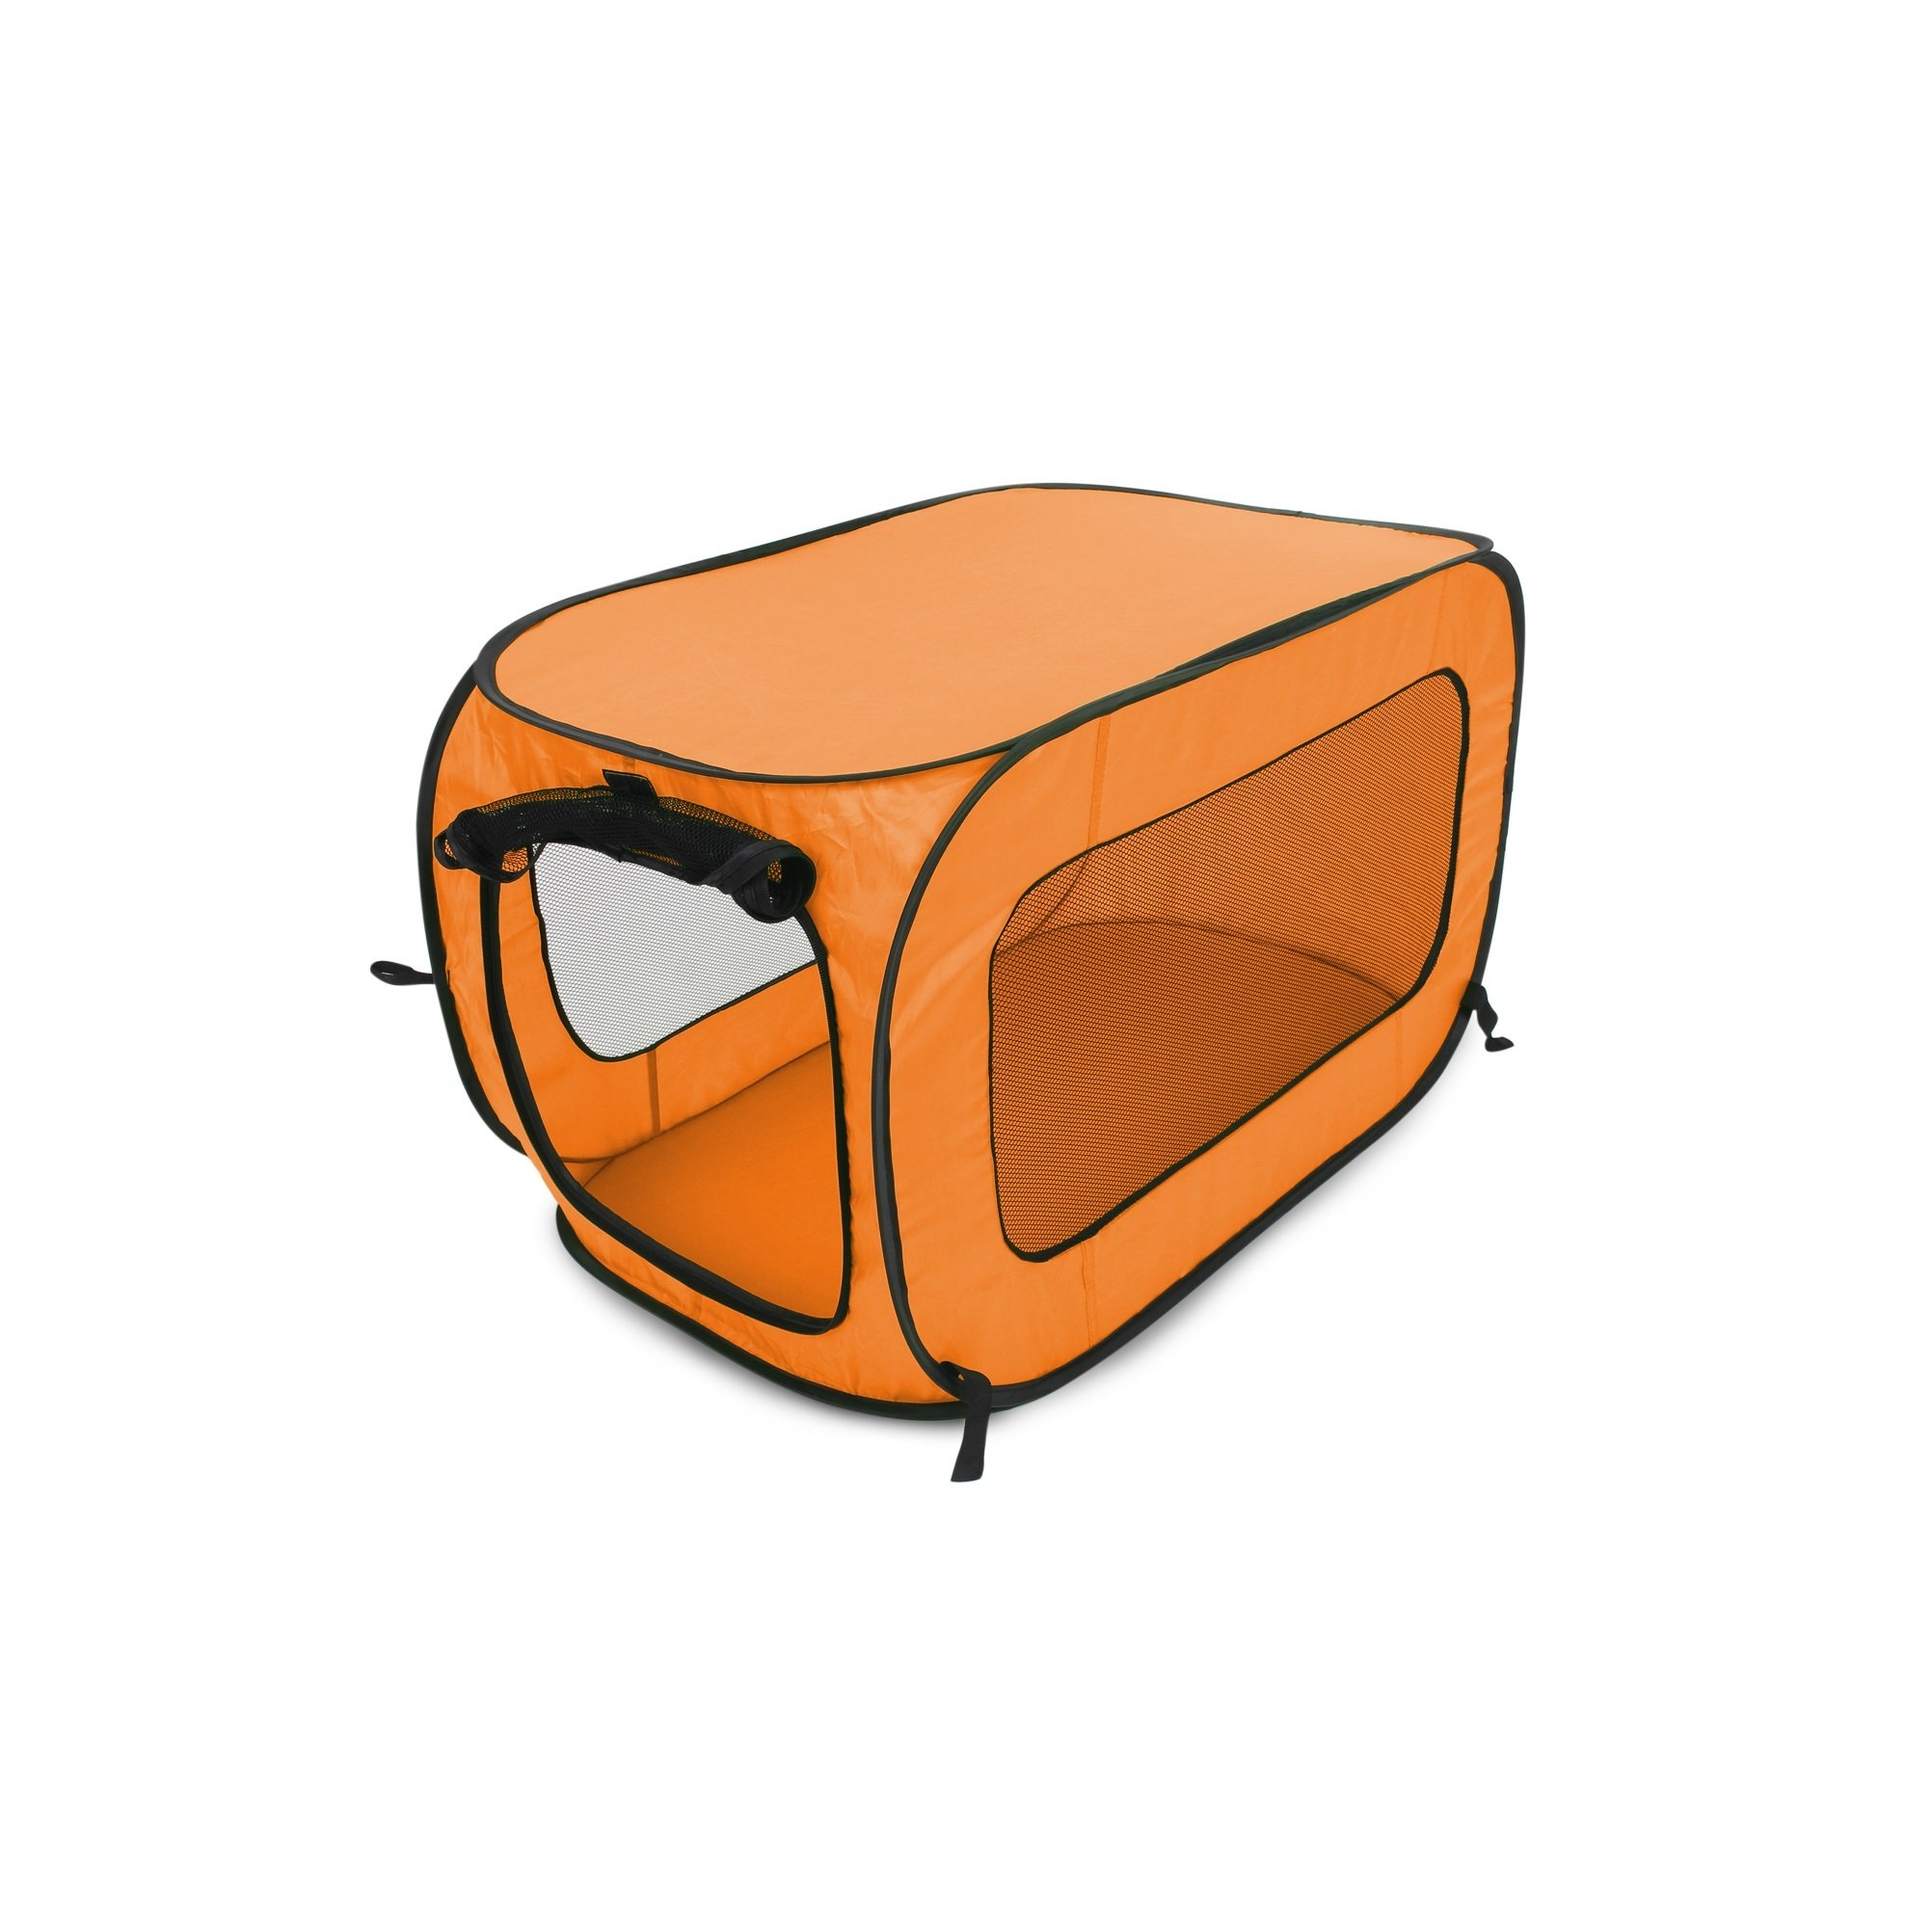 Beatrice Home Fashions SOLPPK00ORG Pop up Pet Kennel Portable Pet Kennel Cage, Orange